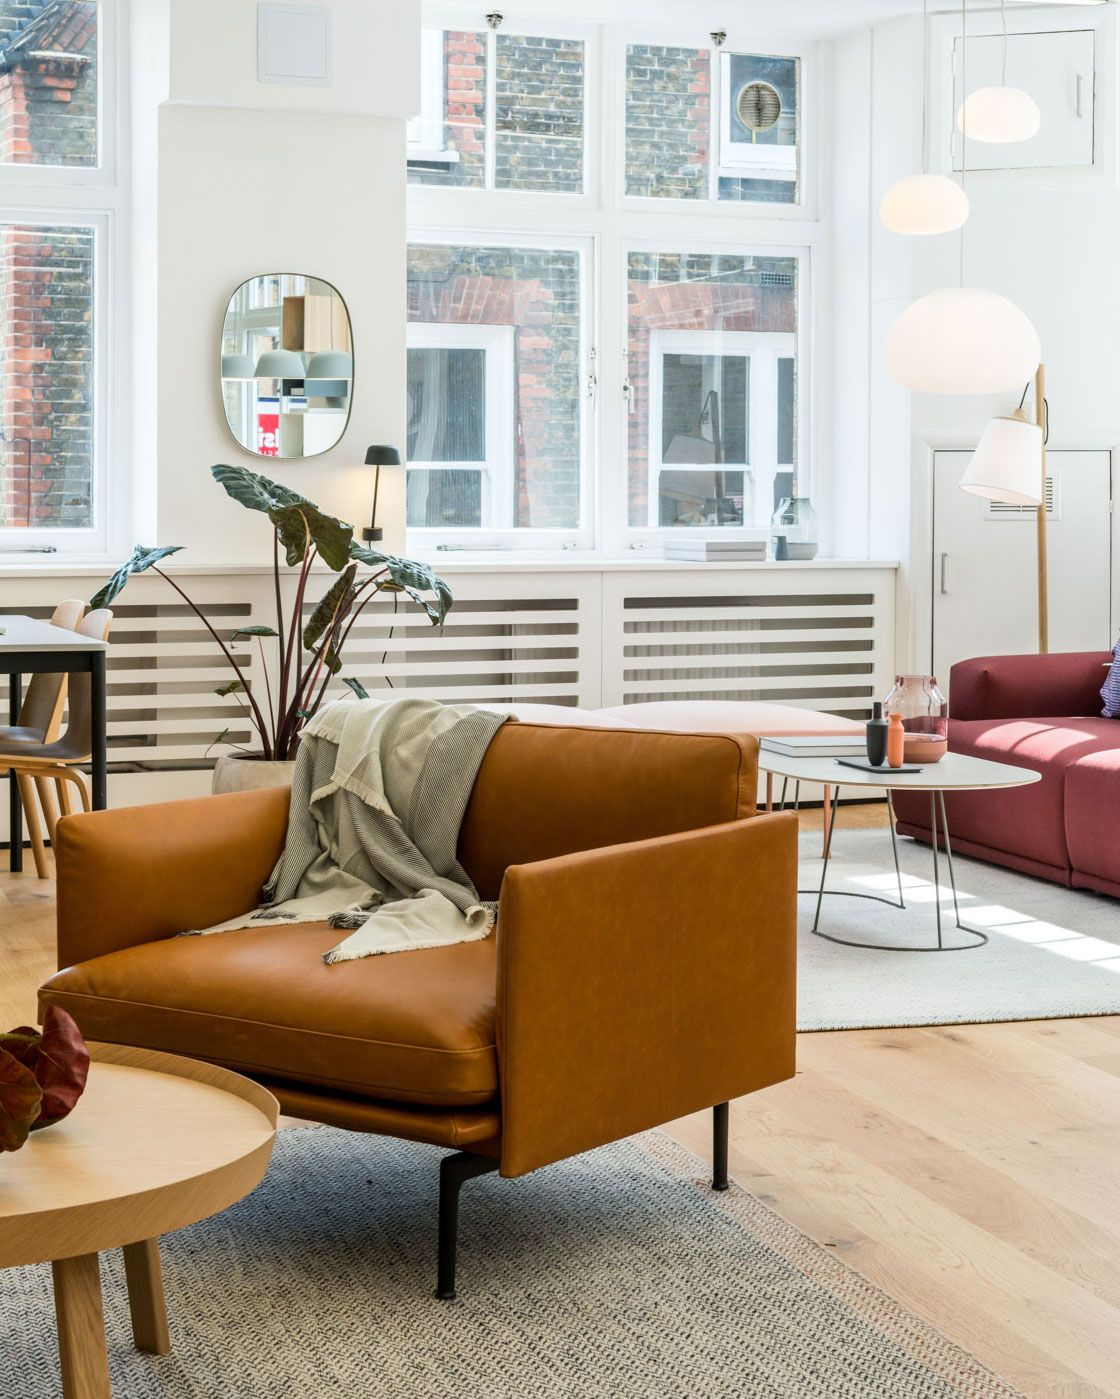 Scandinavian Lounge Chair Inspiration From Muuto The Outline Series Adds New Perspectives To The Classic Scandinavian Design Sofas Of The 1960 S Marrying The